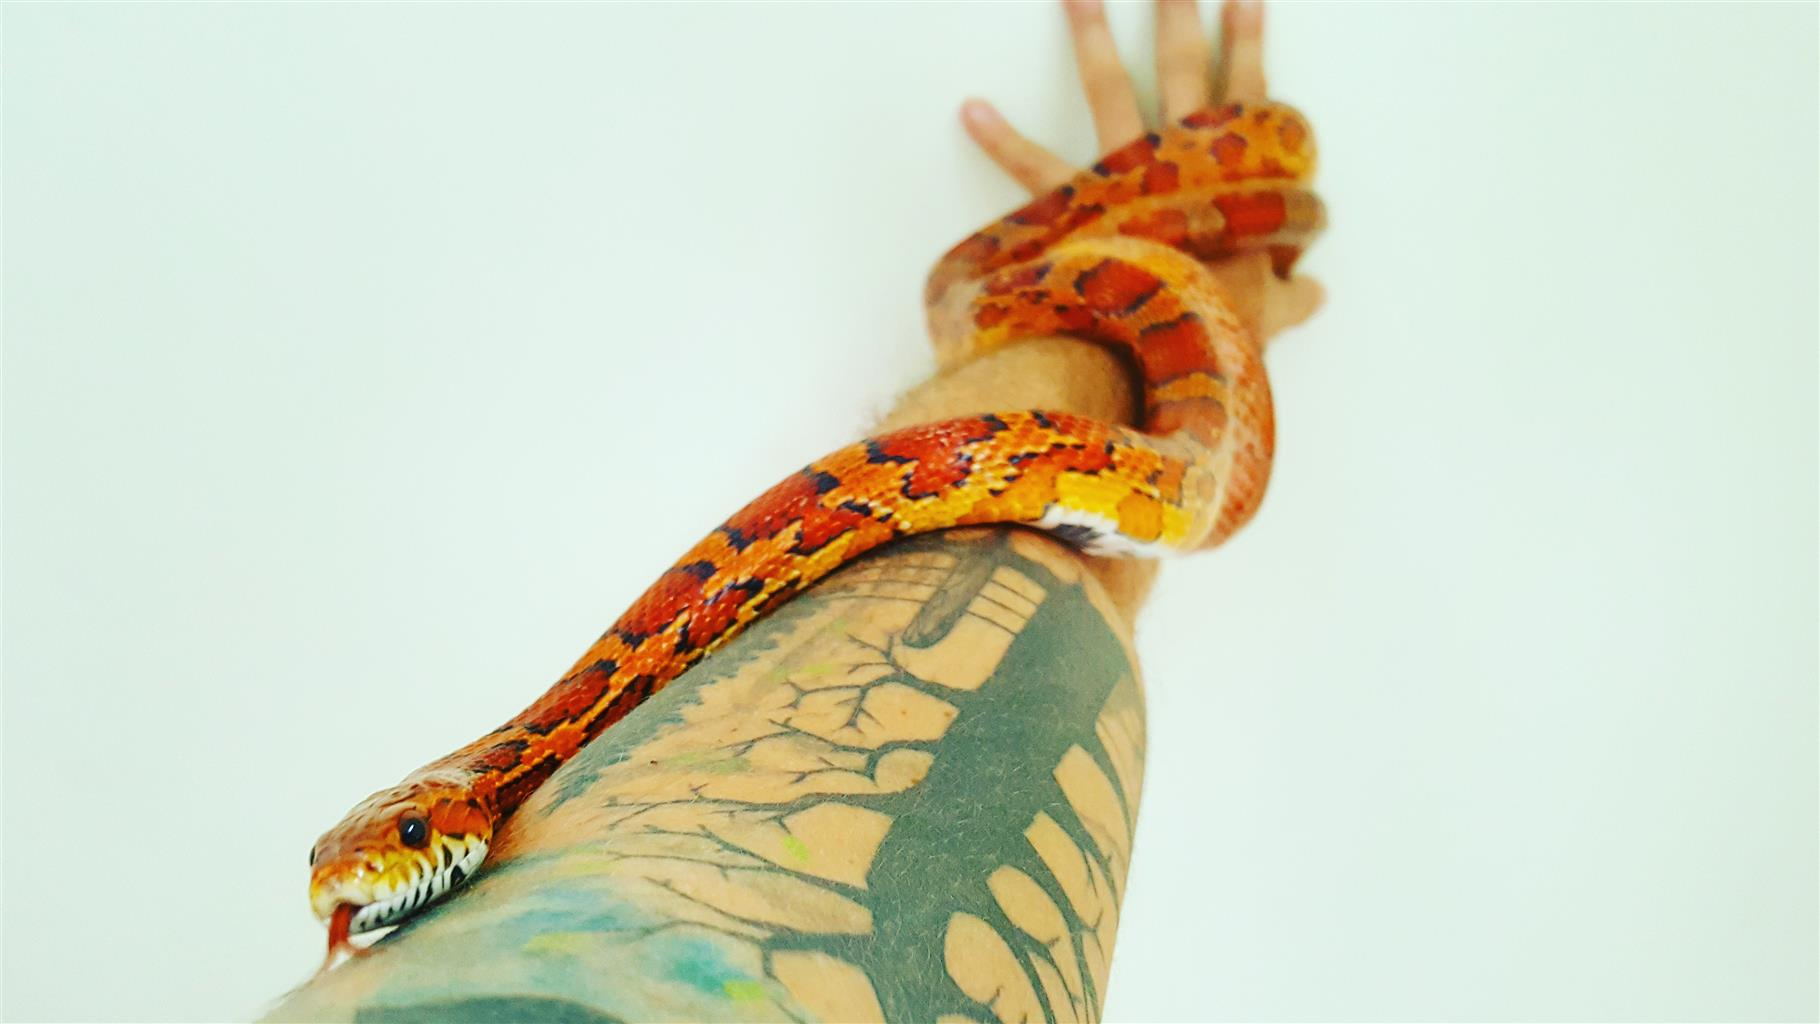 Male and female pair corn snakes with 1.2m tank